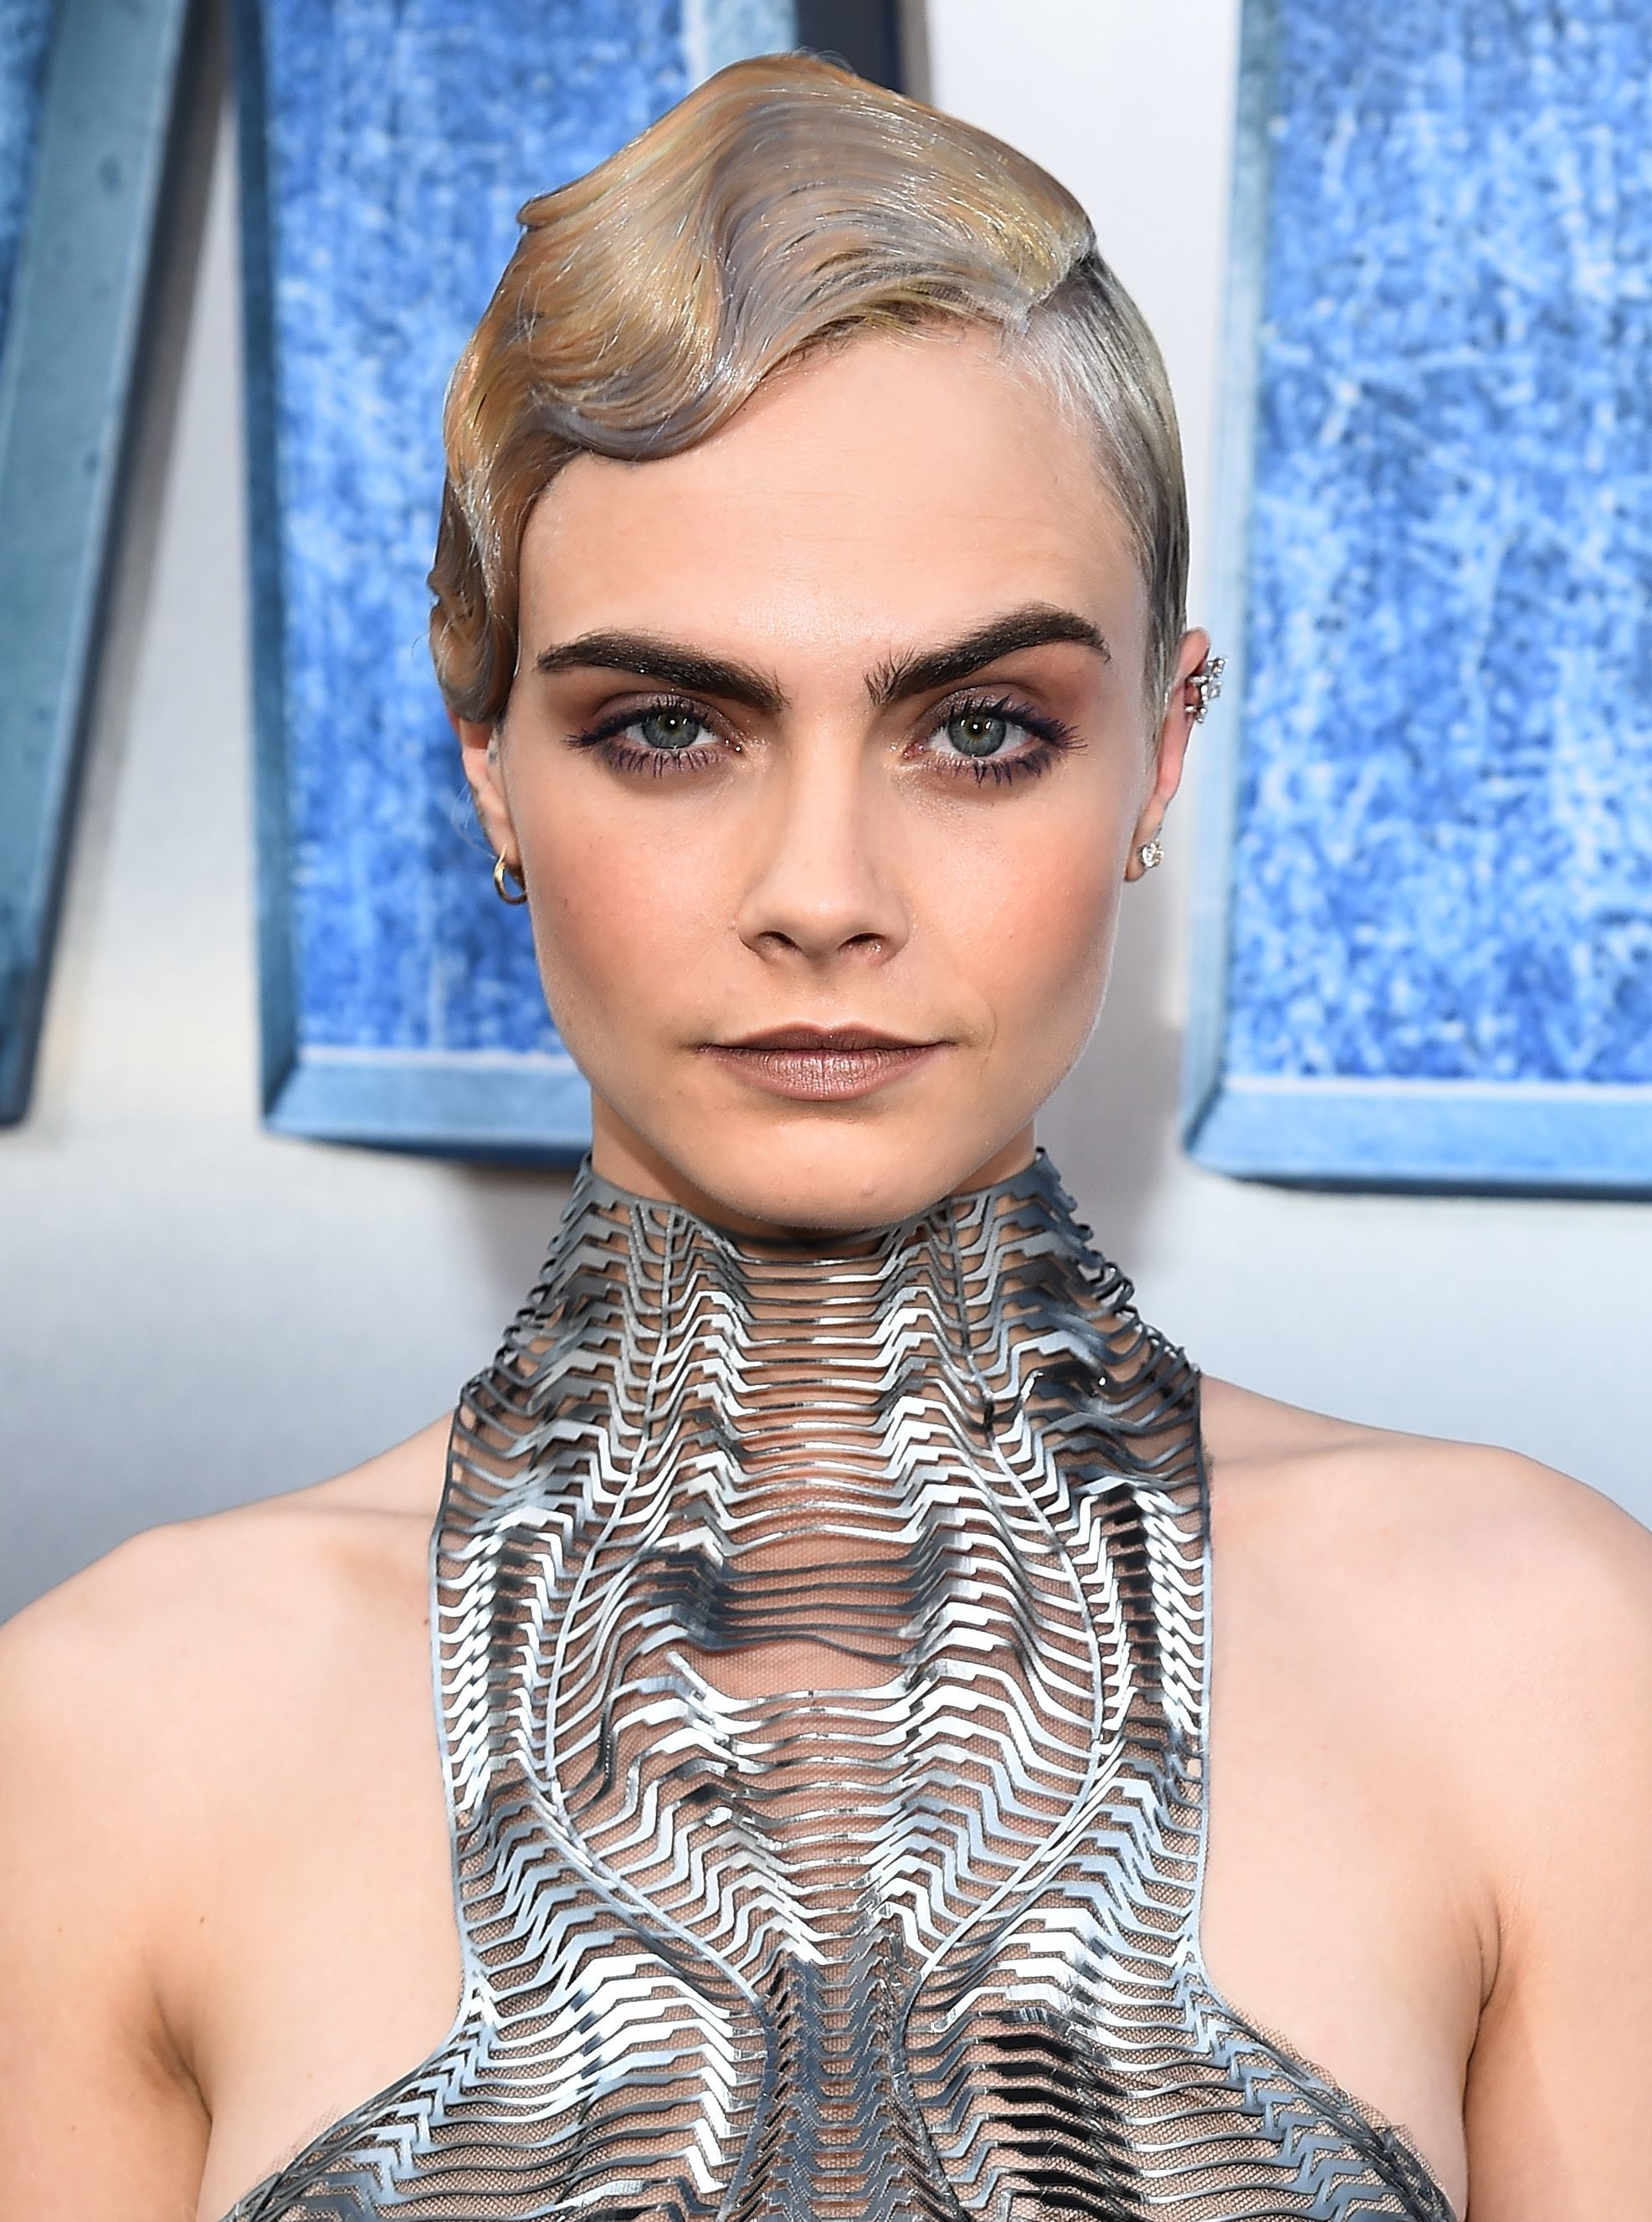 1930s hairstyles: british model cara delevingne with a finger wave pixie cut